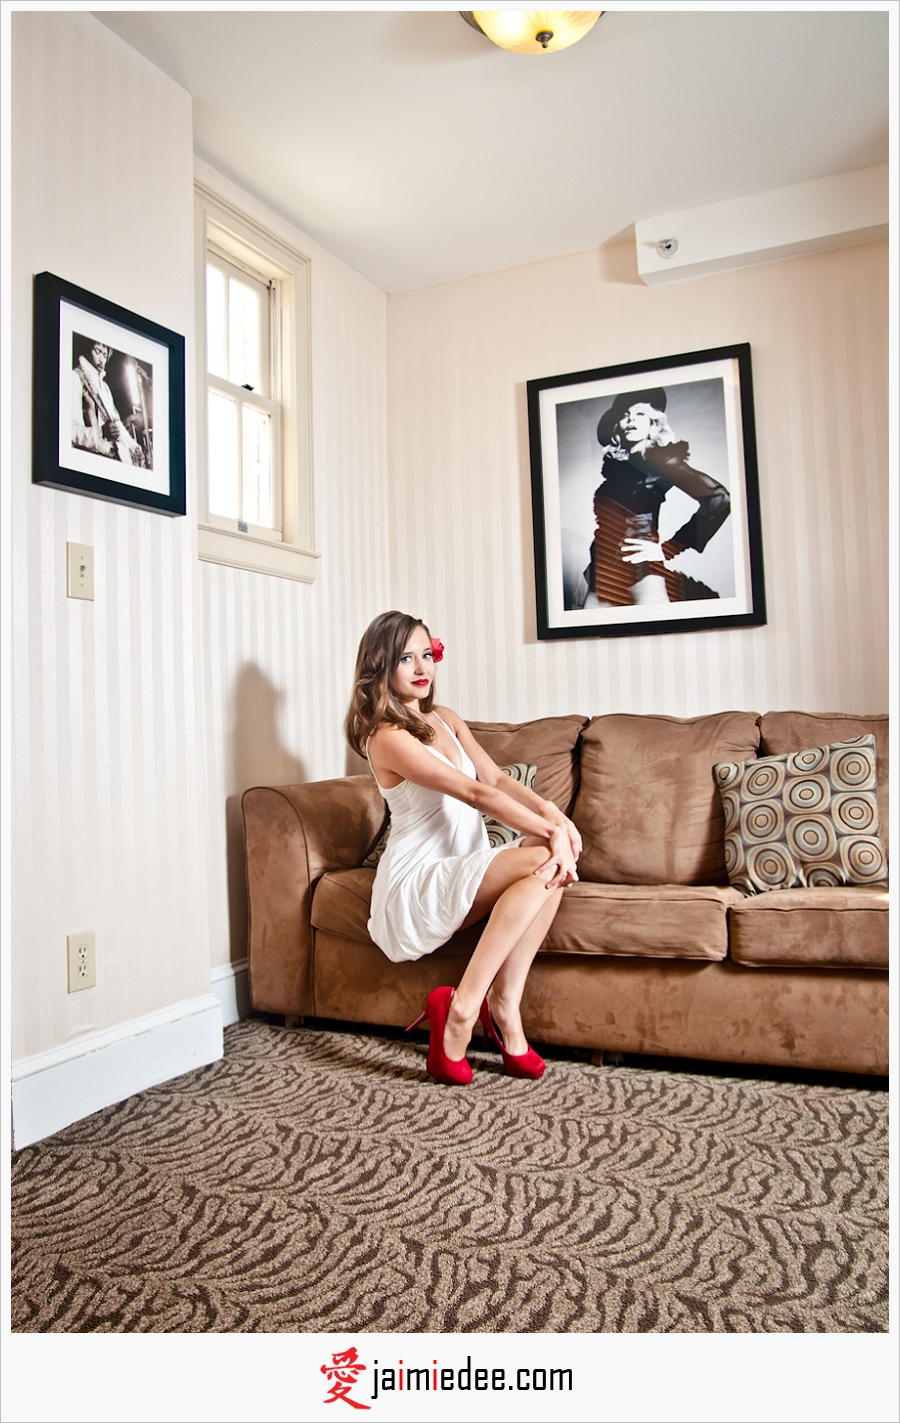 Photoshoot at the Artmore Hotel | Midtown Atlanta